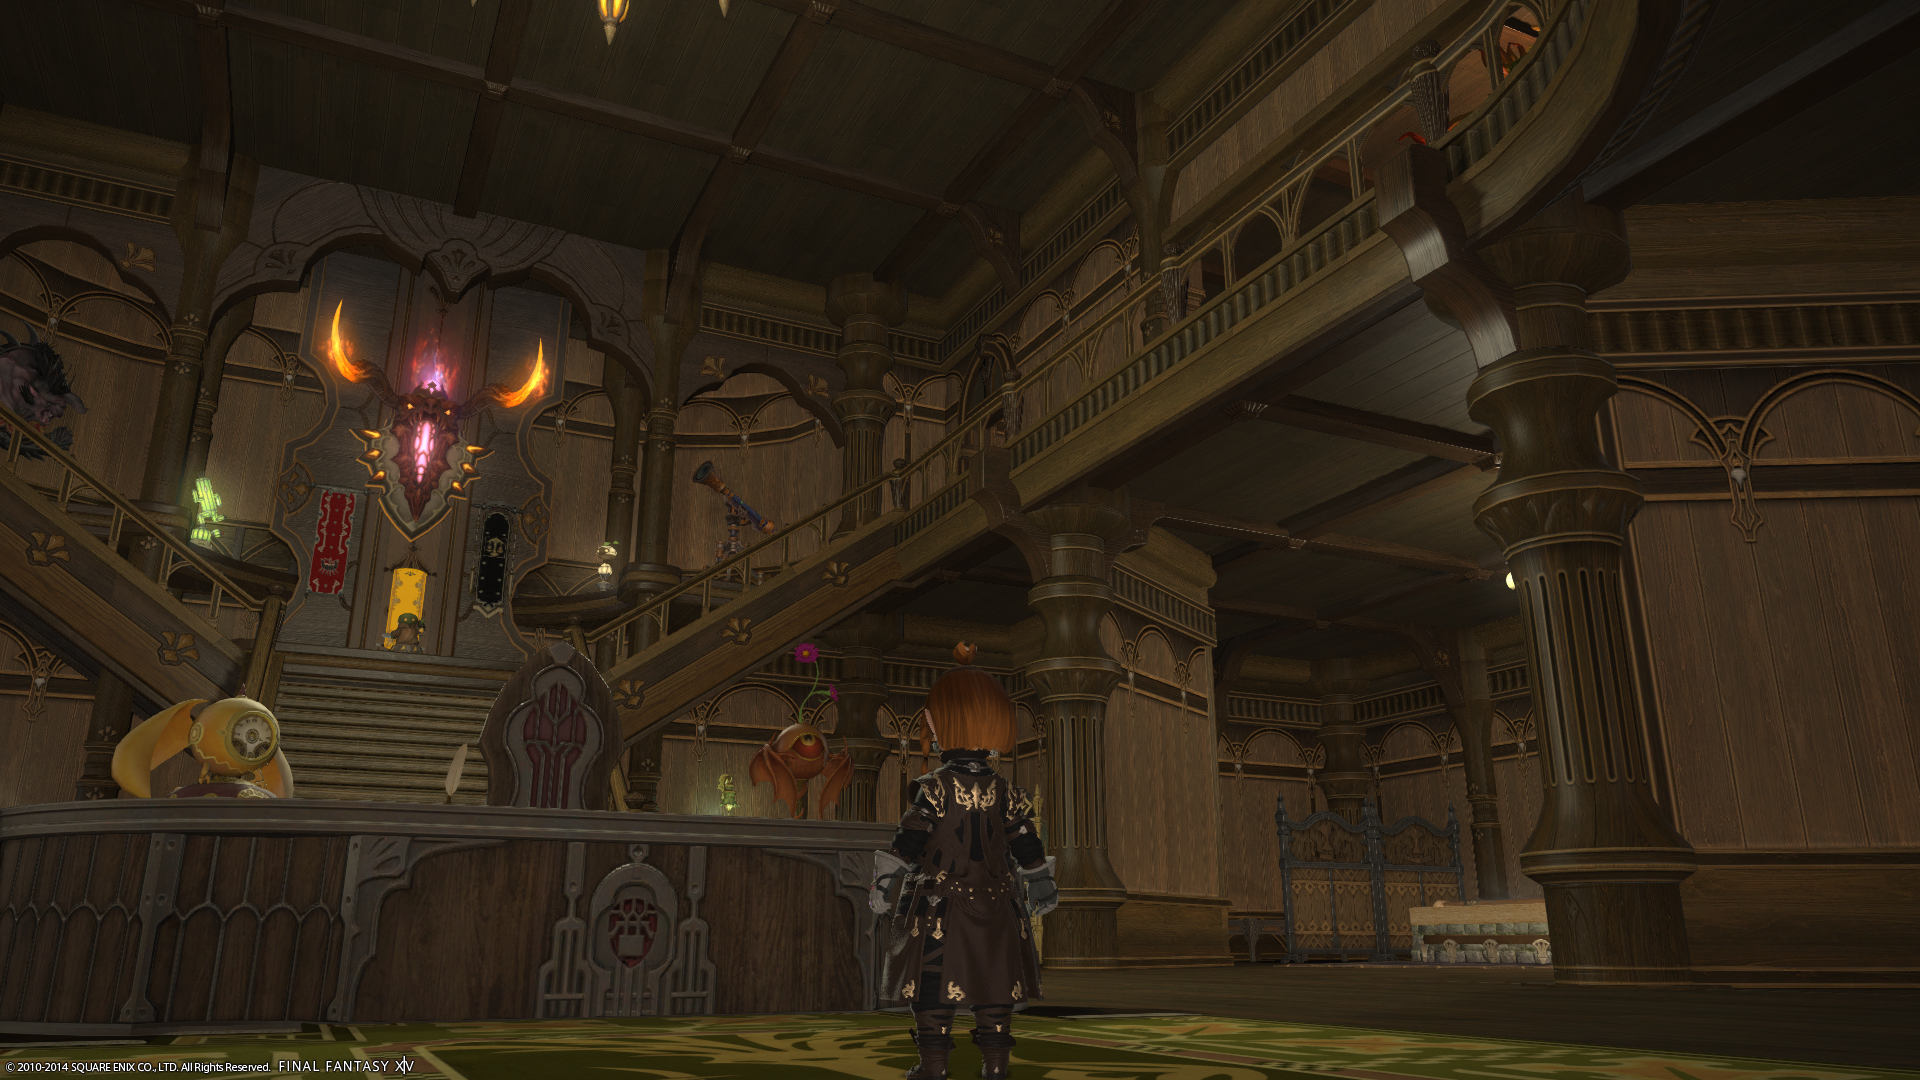 nep ffxiv scaling them hurts down bucket size file need bigger 1920 stupid reborn screenshot thread realm fantasy 1017 somewhat less with release final